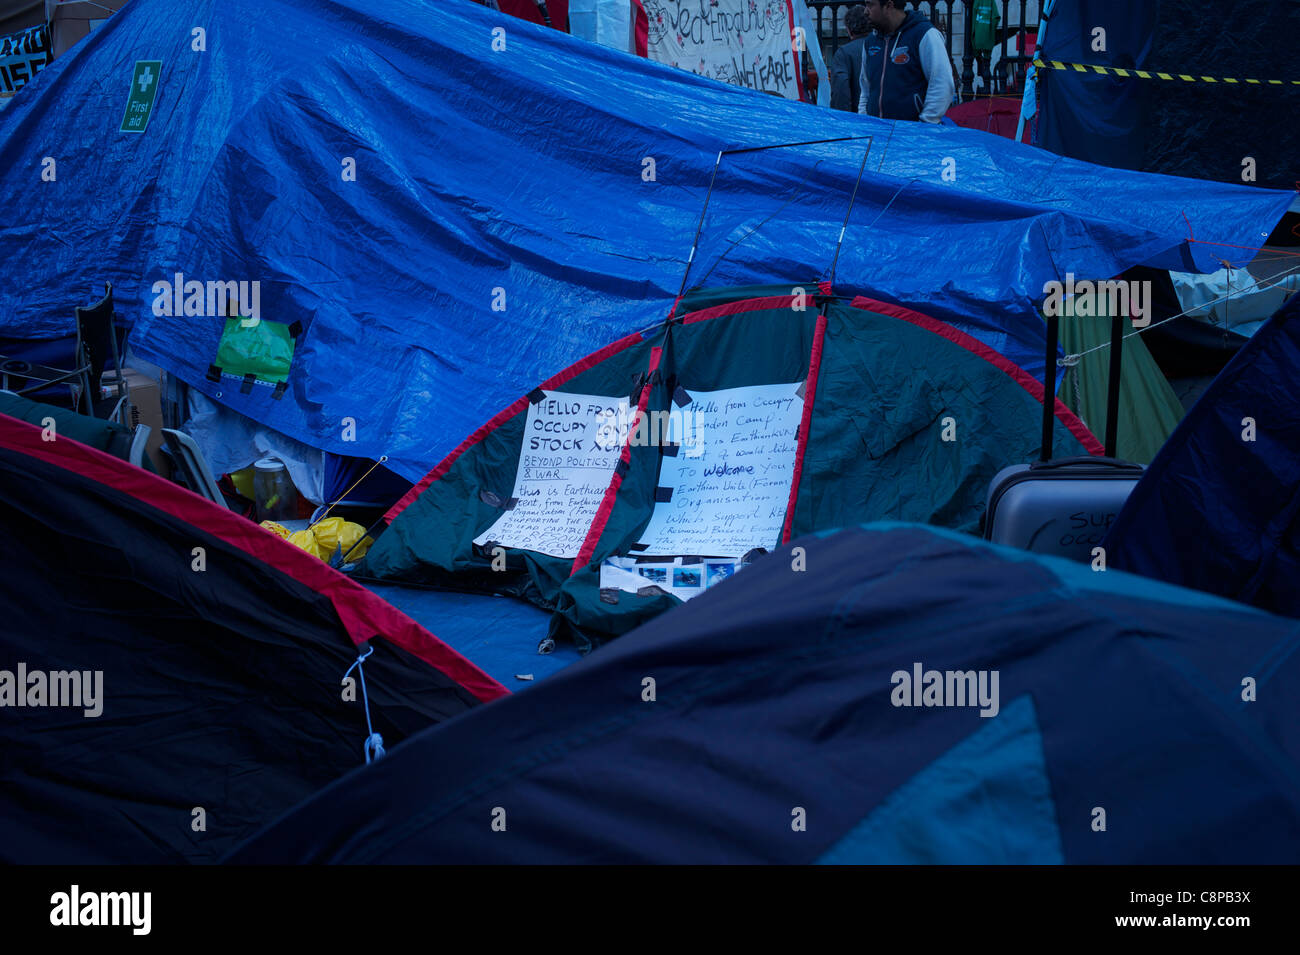 Tented protest at St Pauls against capitalism - Stock Image